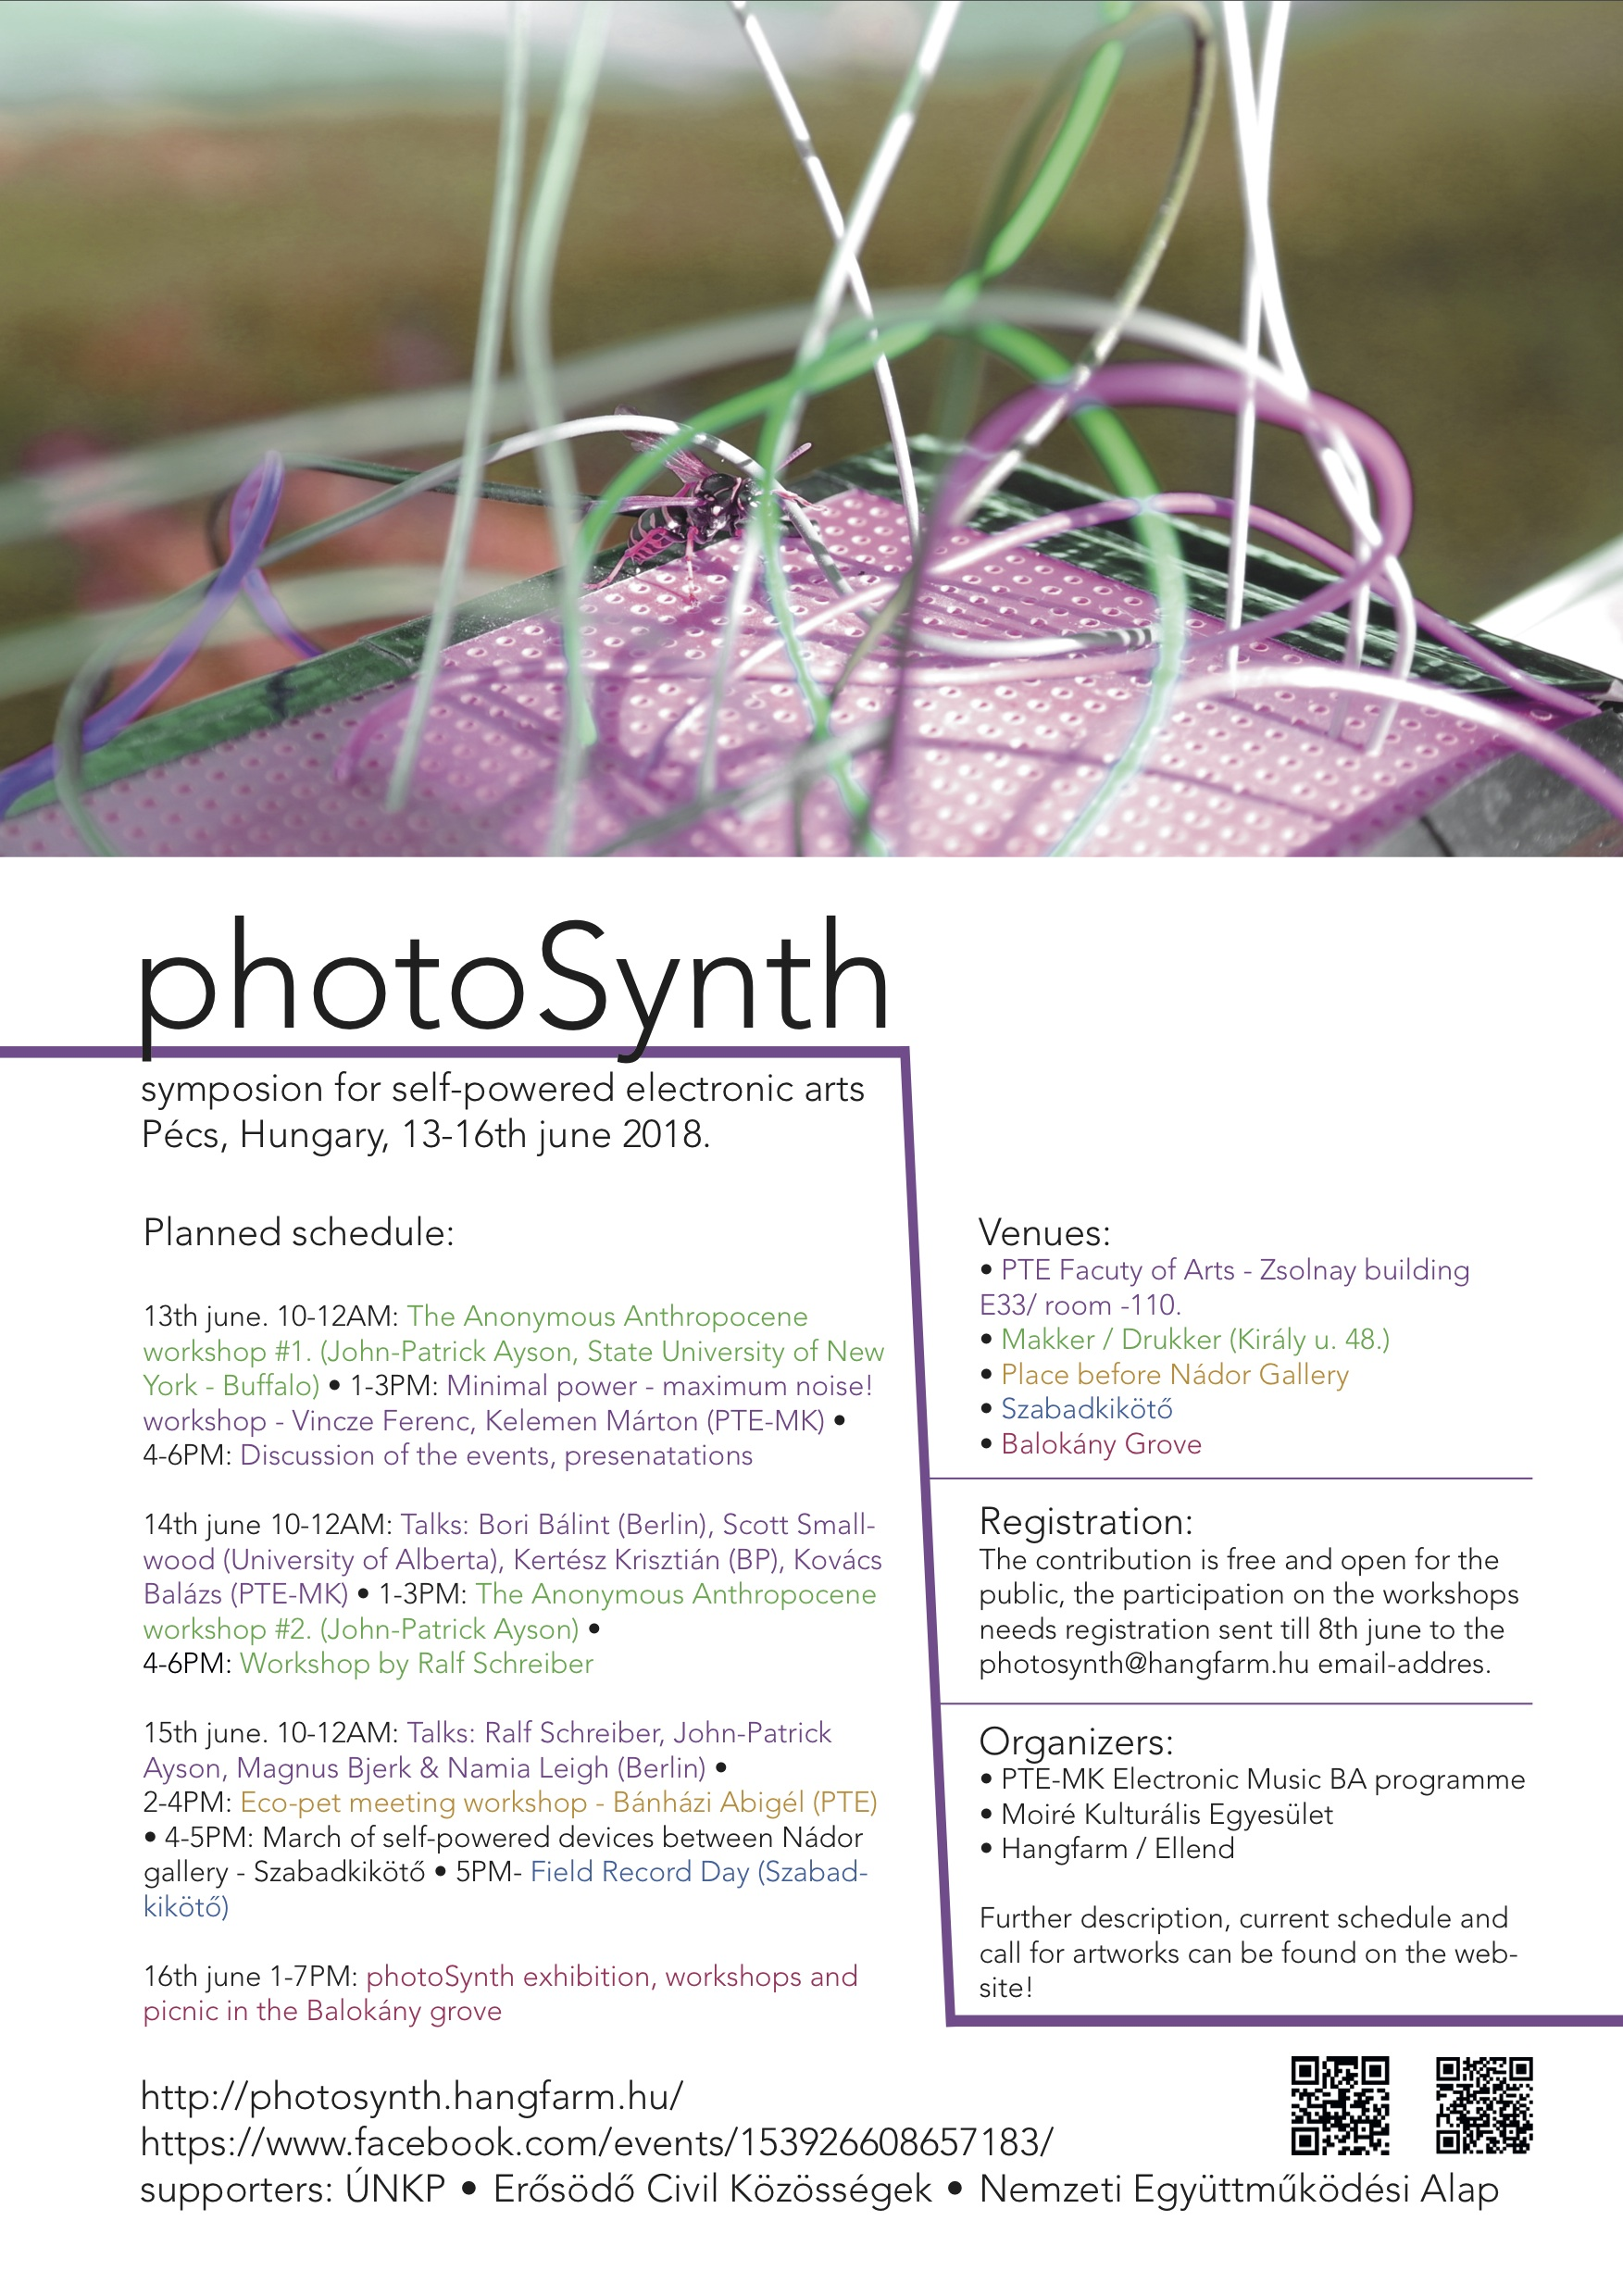 photosynth-poster